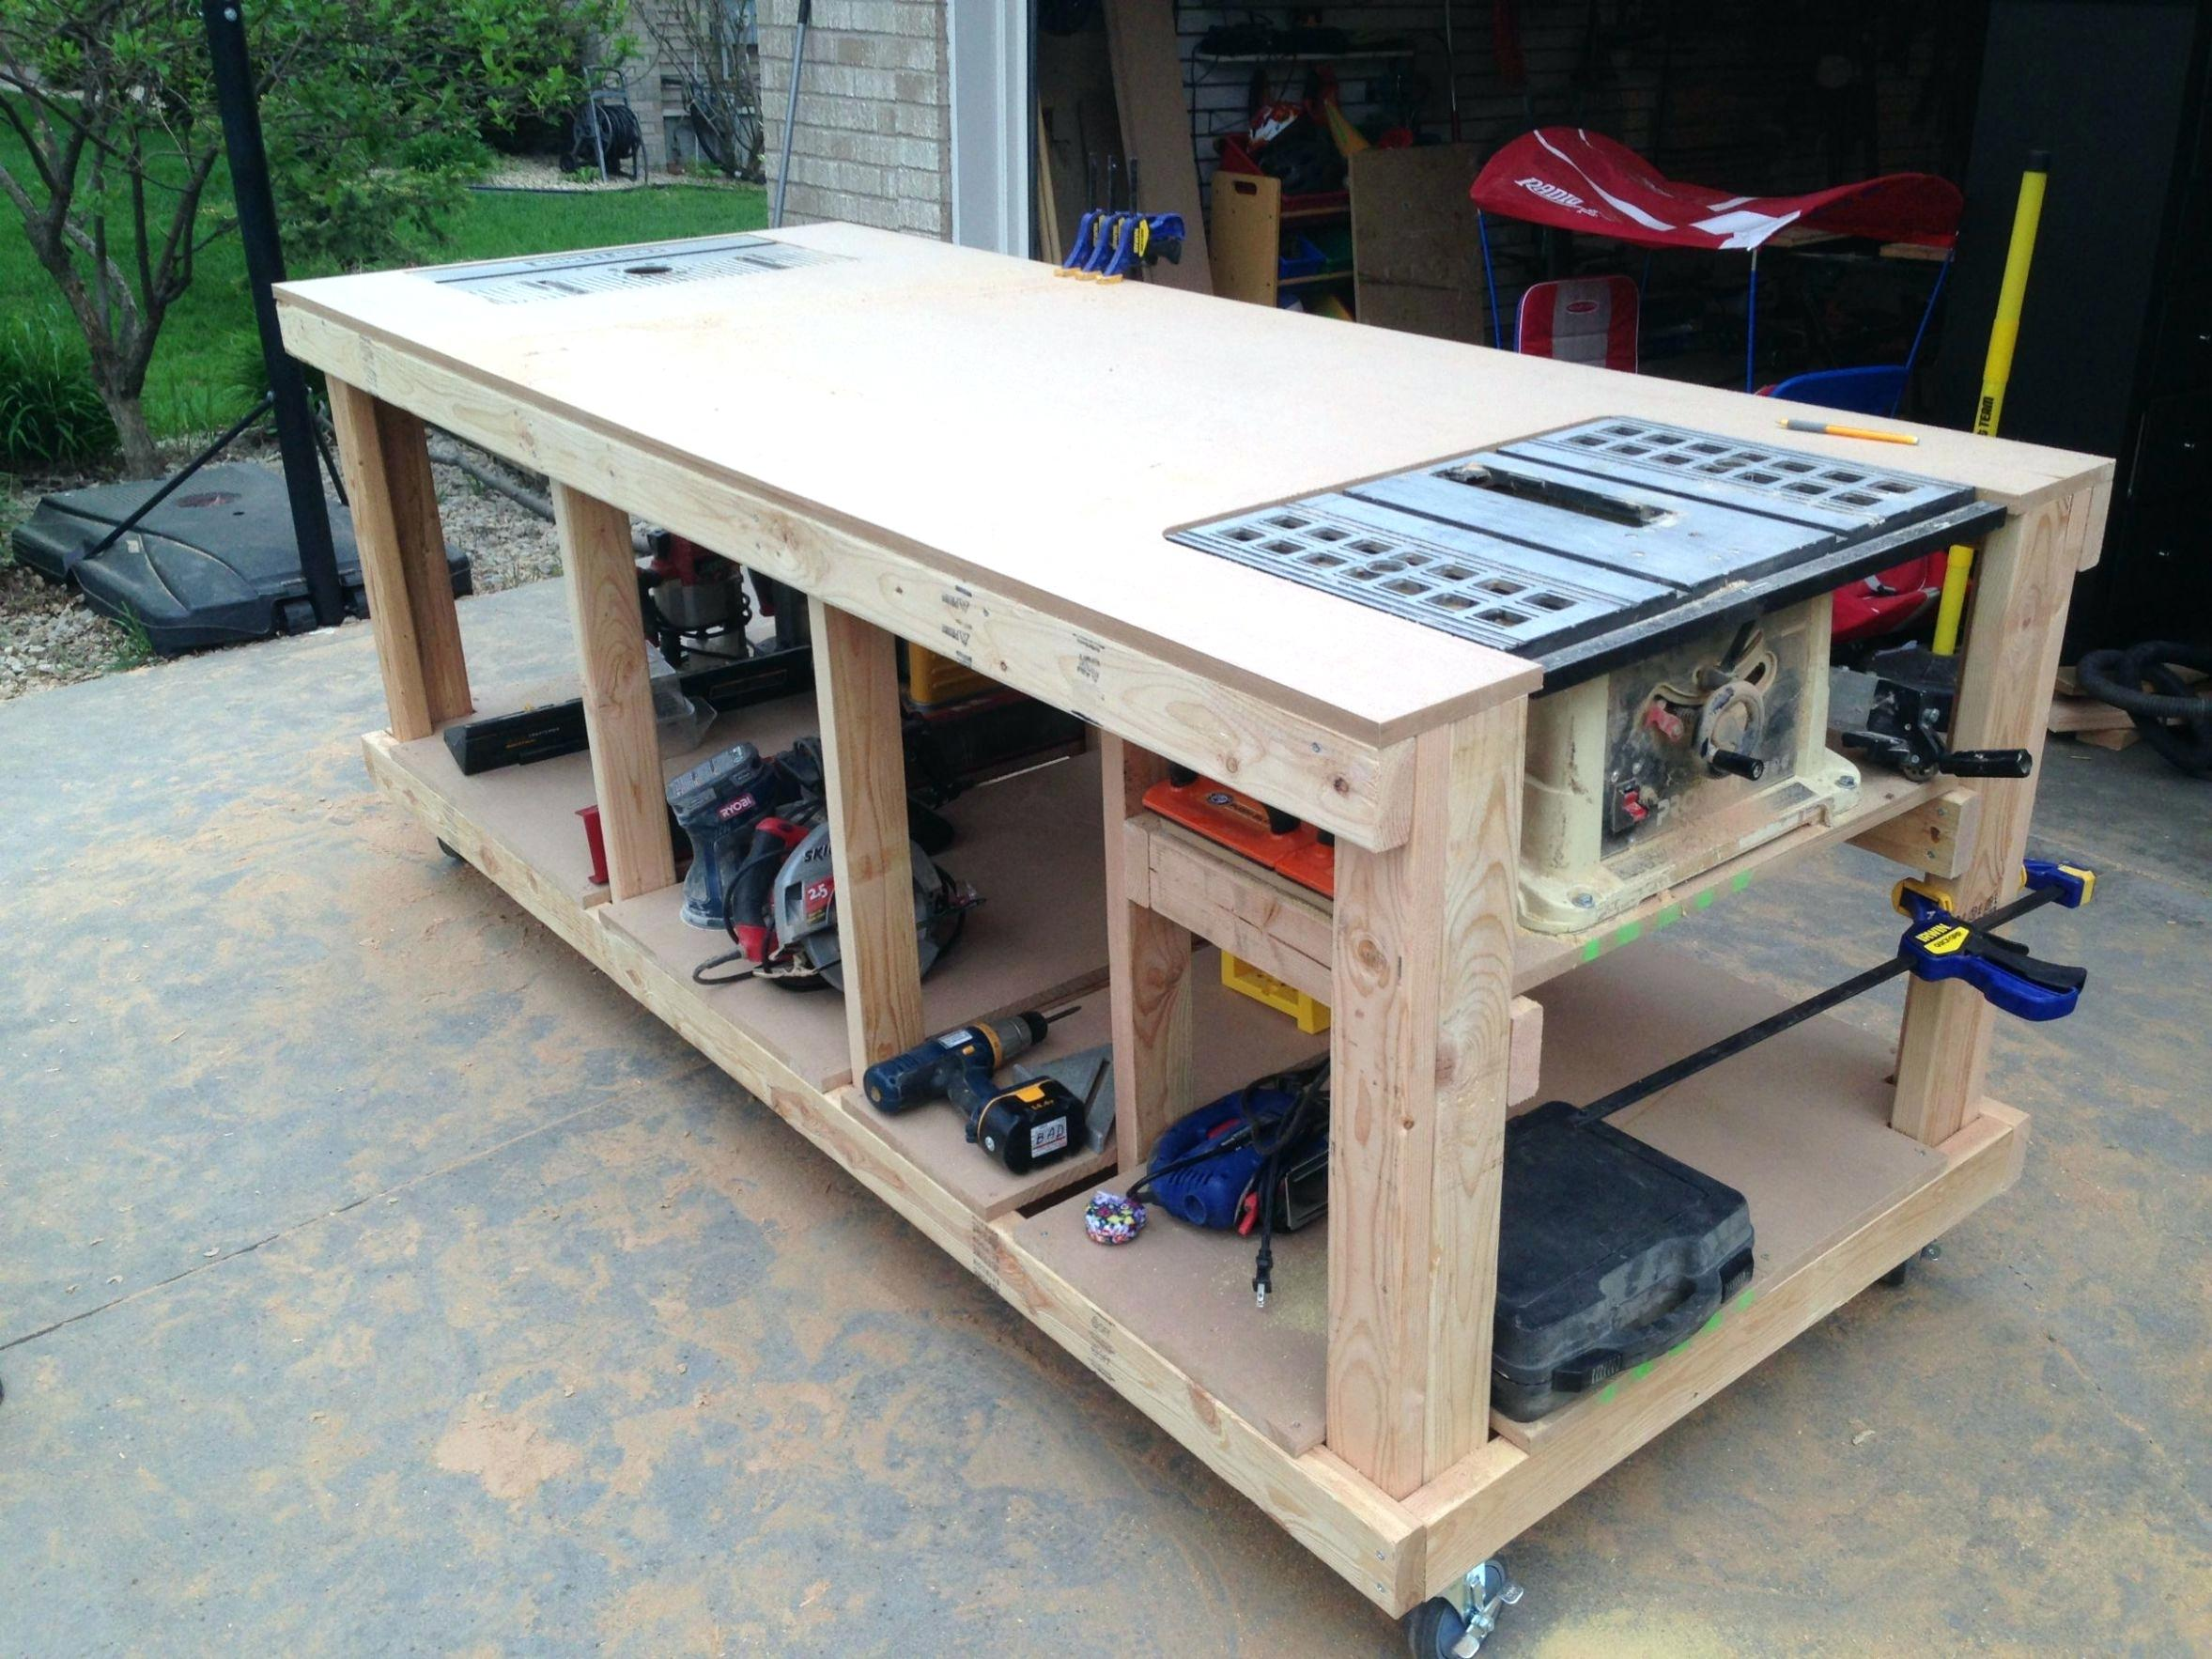 excellent-portable-work-bench-with-additional-es-portable-workbench-diy-build-plans-pdf-gammaphibetaocu-of-portable-work-bench